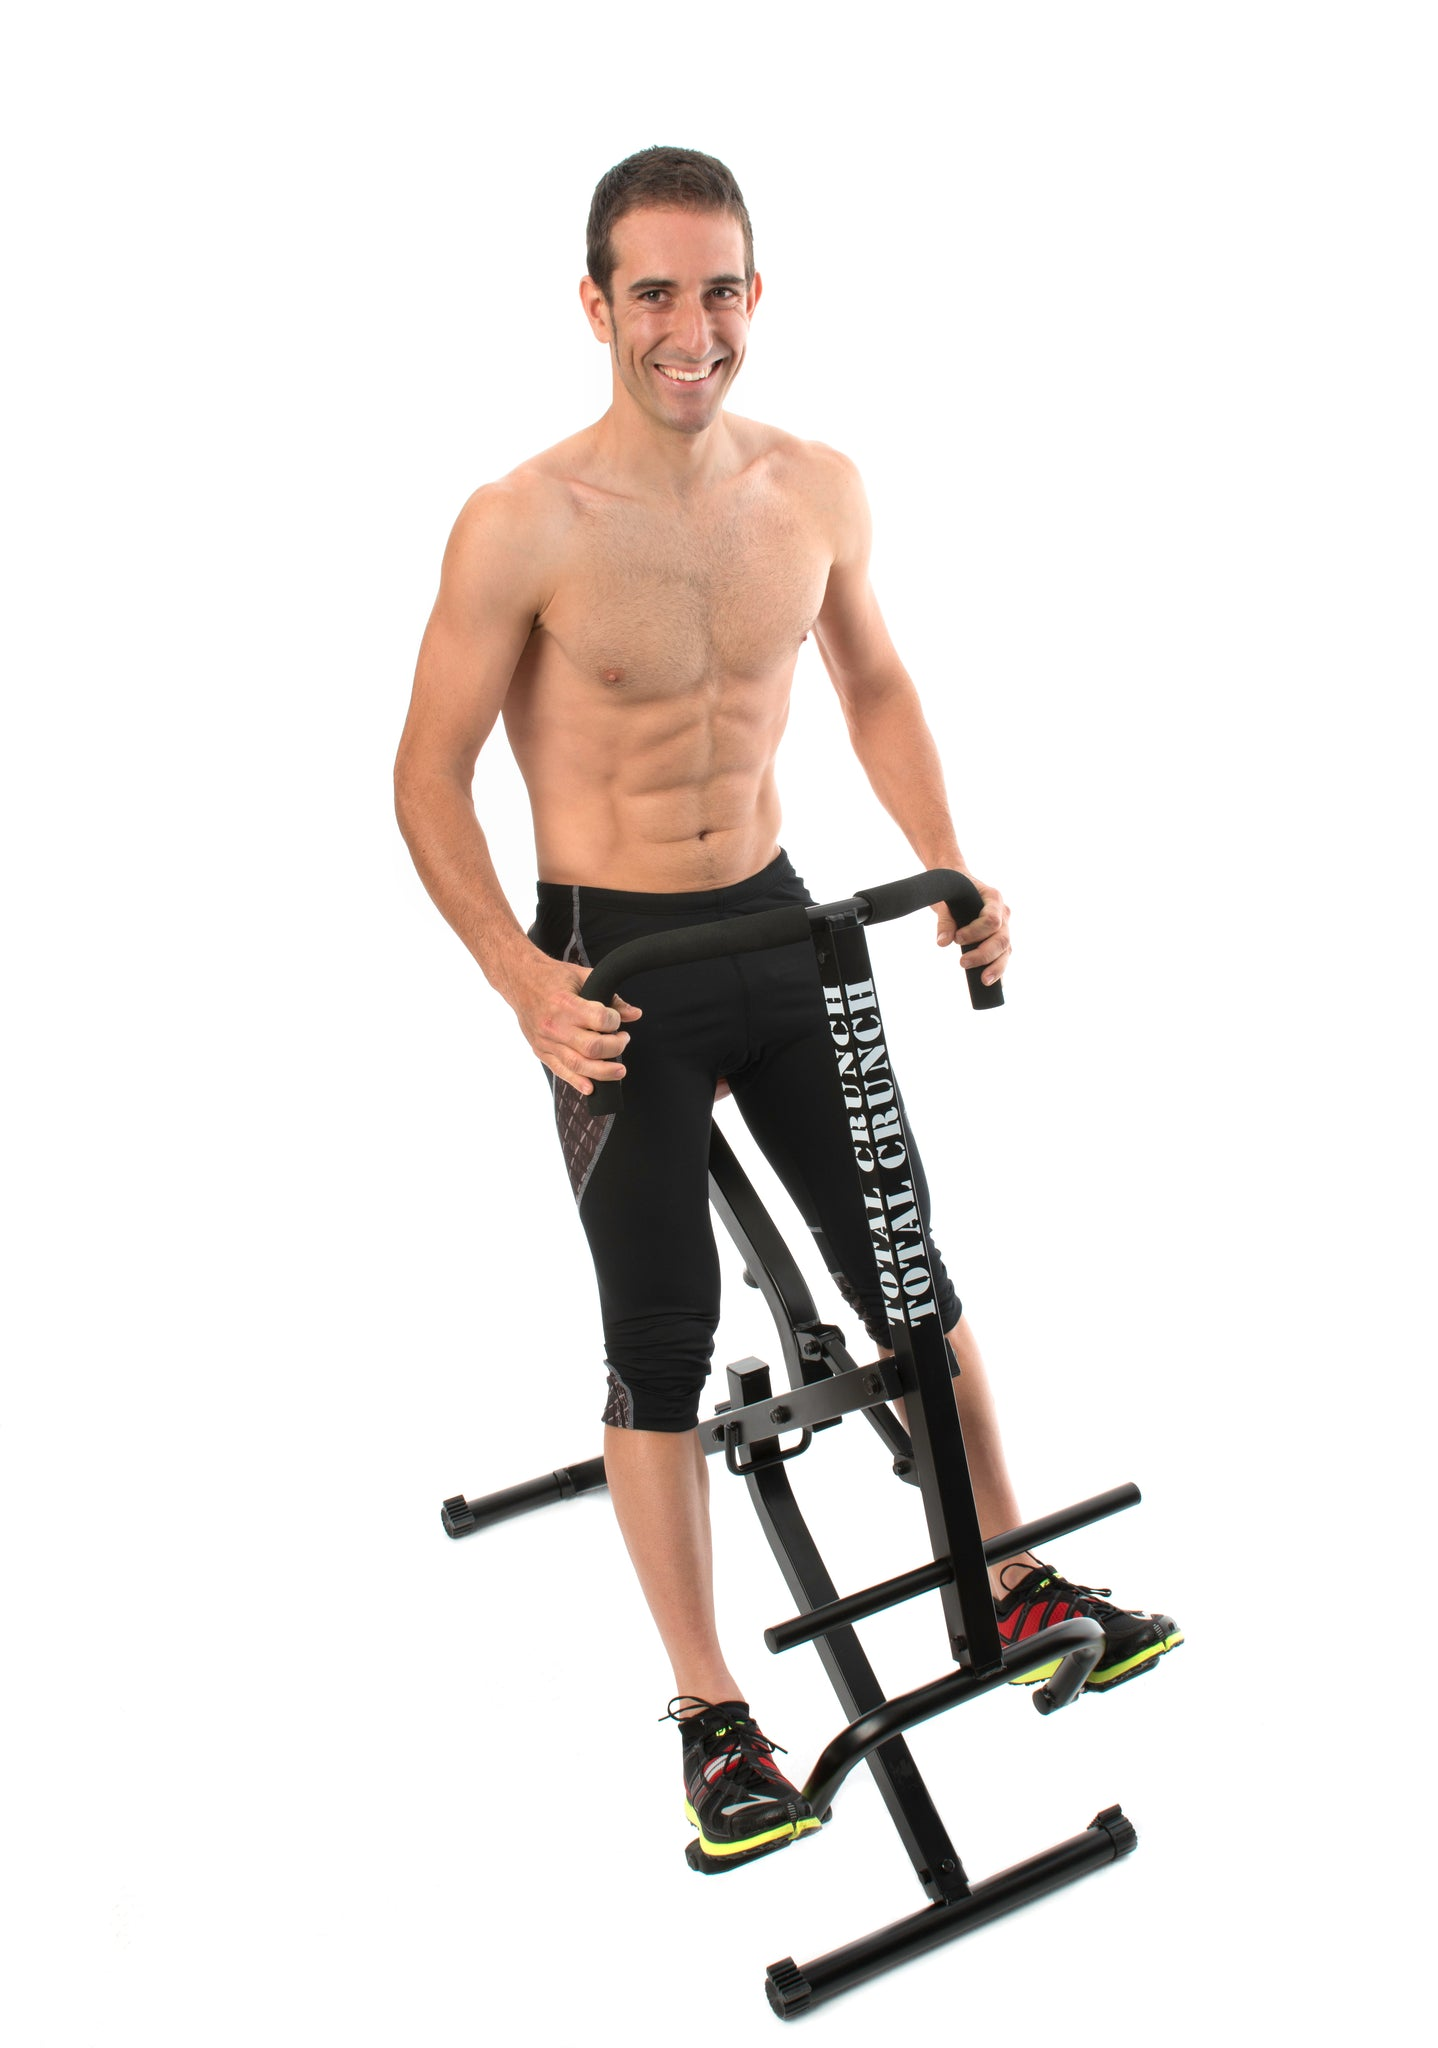 Total Crunch Full Body Workout System